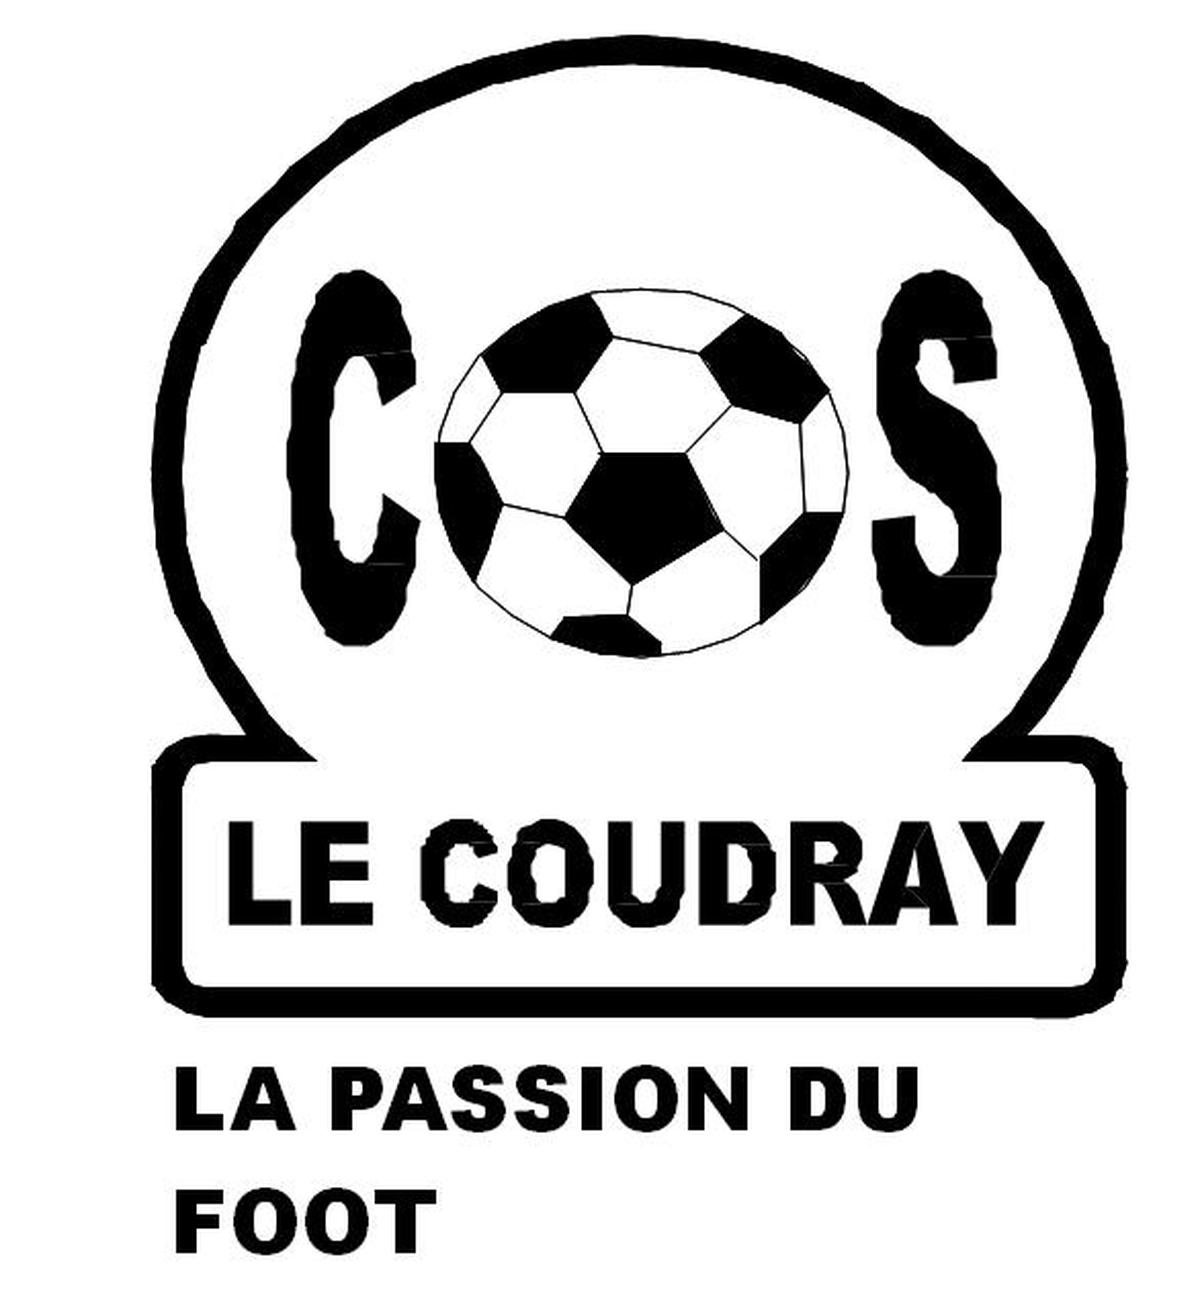 Coudray Os